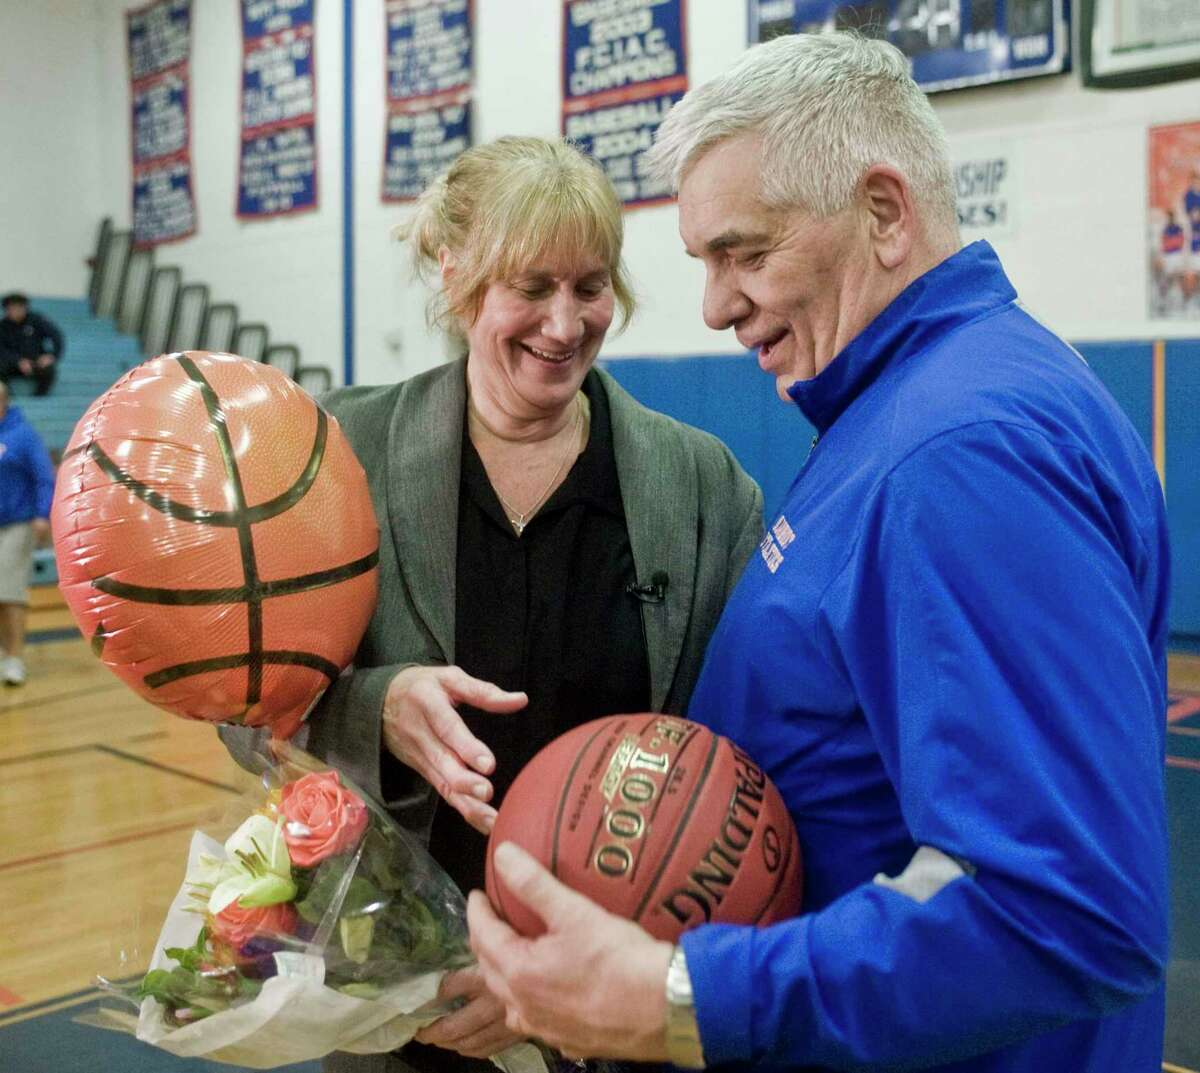 Danbury High School girls basketball Head Coach Jackie DiNardo is presented the game ball by Danbury High School Athletic Director Chip Salvestrini after her 500th victory in a game against Bridgeport Central High School, played at Danbury. Tuesday, Feb. 5, 2019